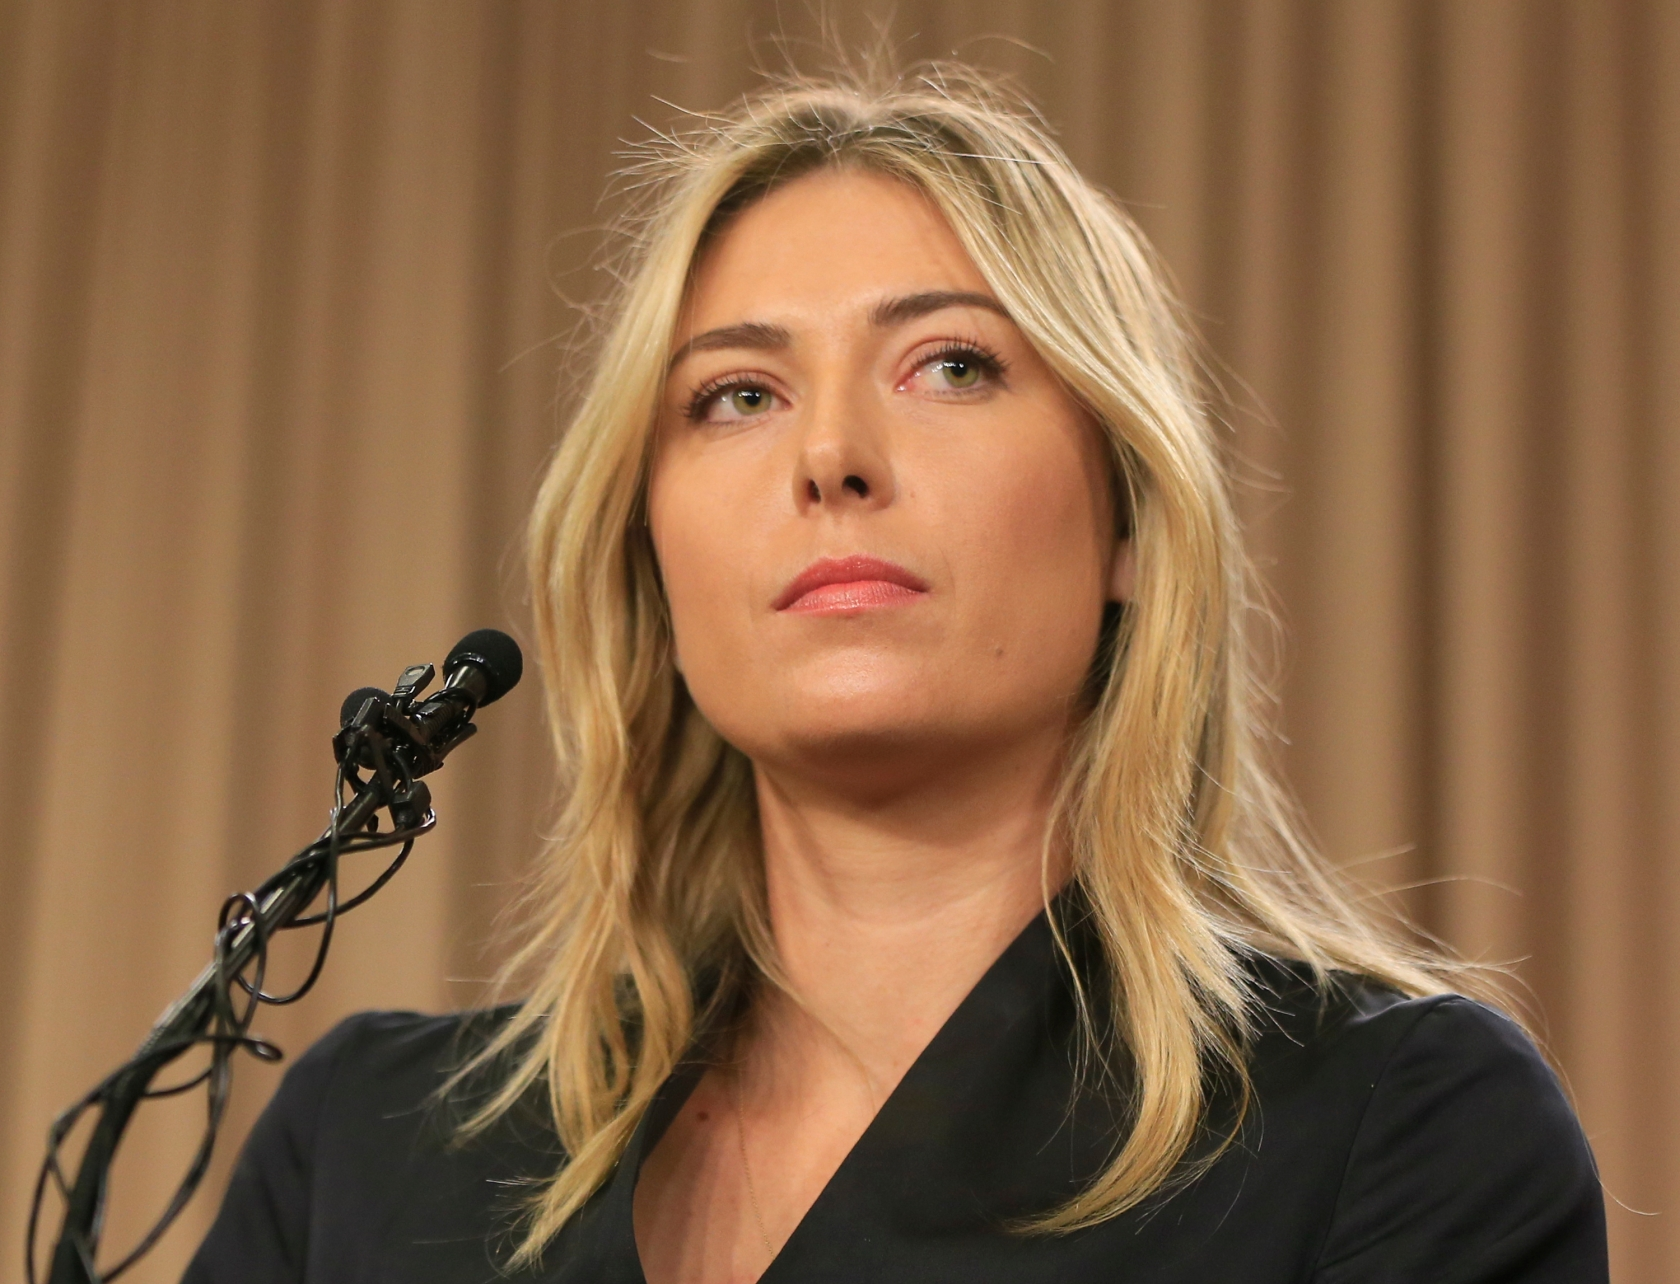 The Re selling of Maria Sharapova